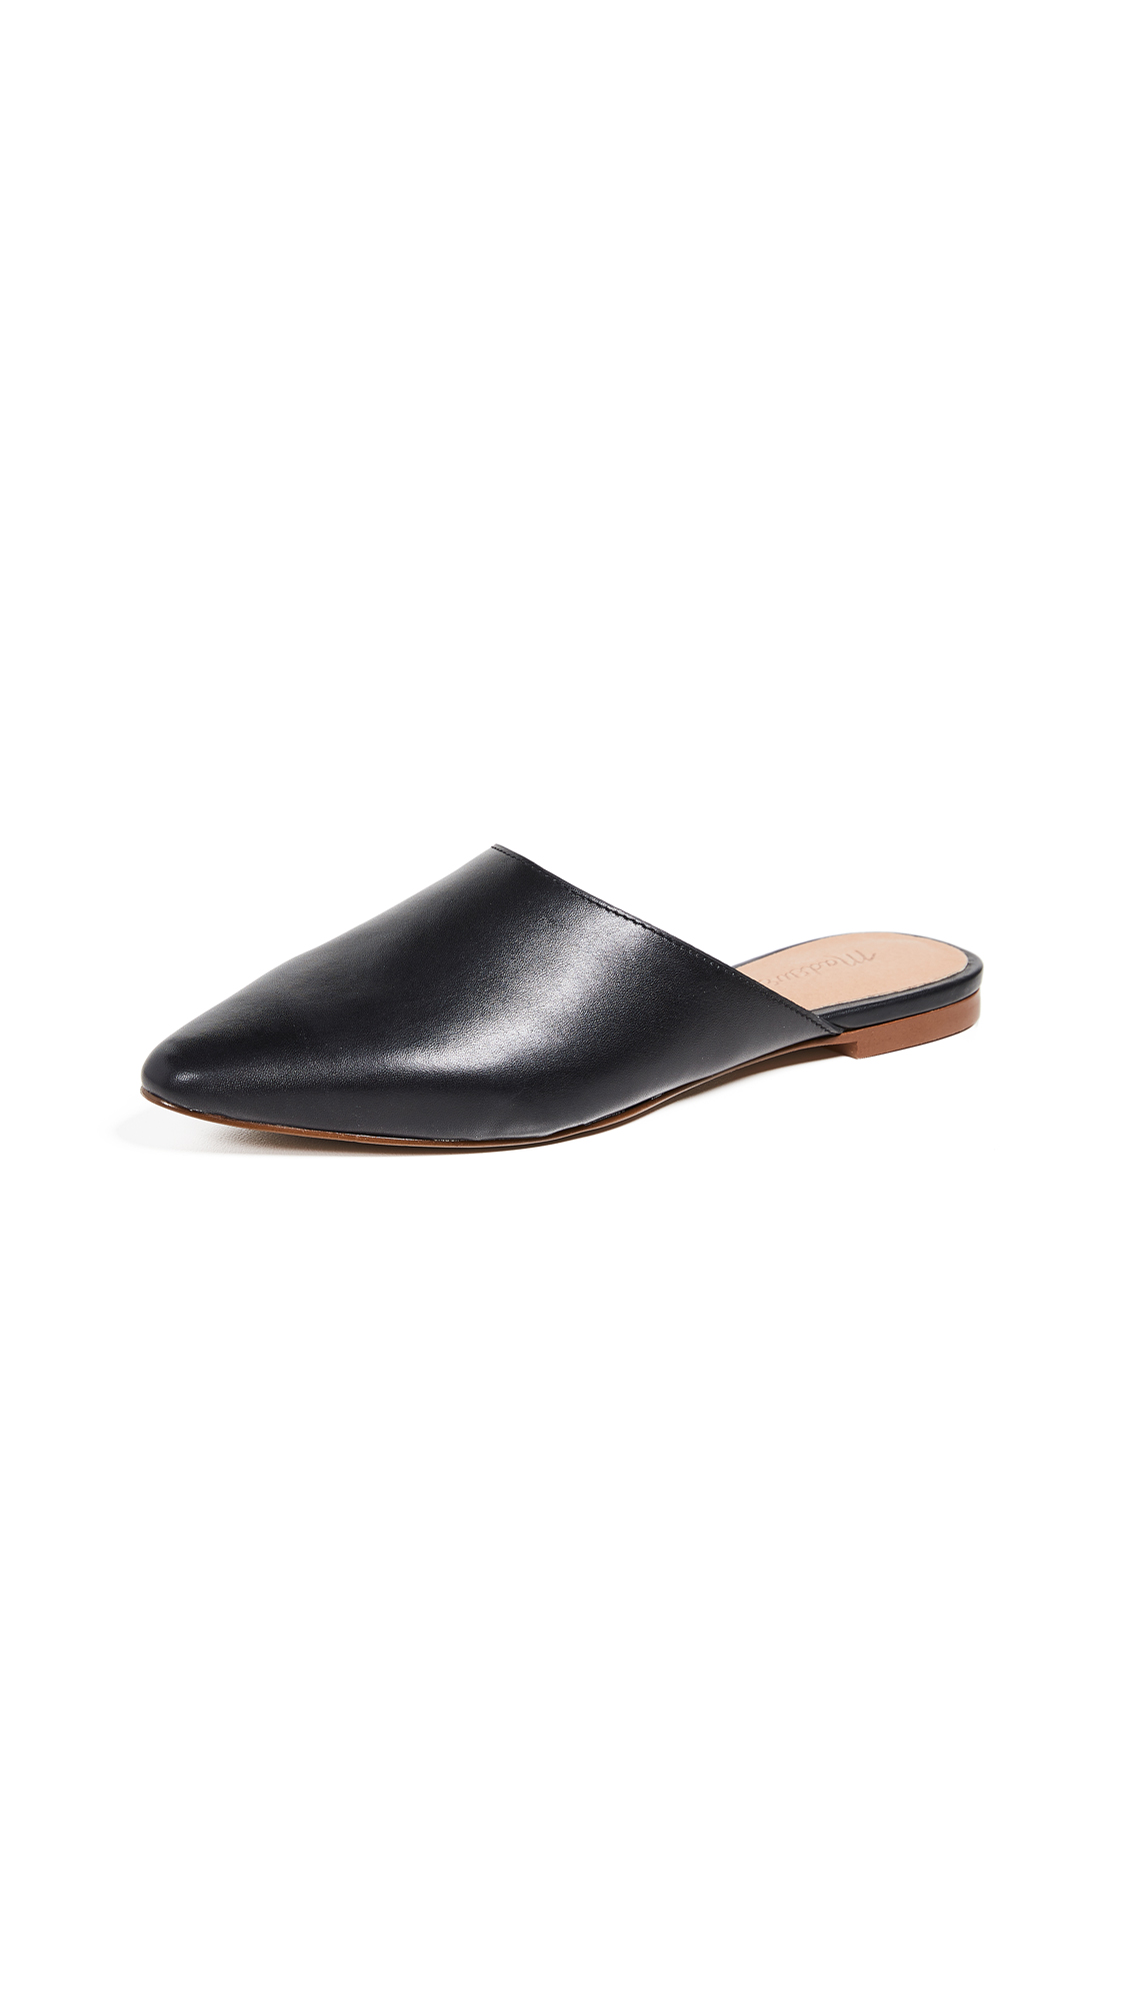 Madewell The Remi Mules